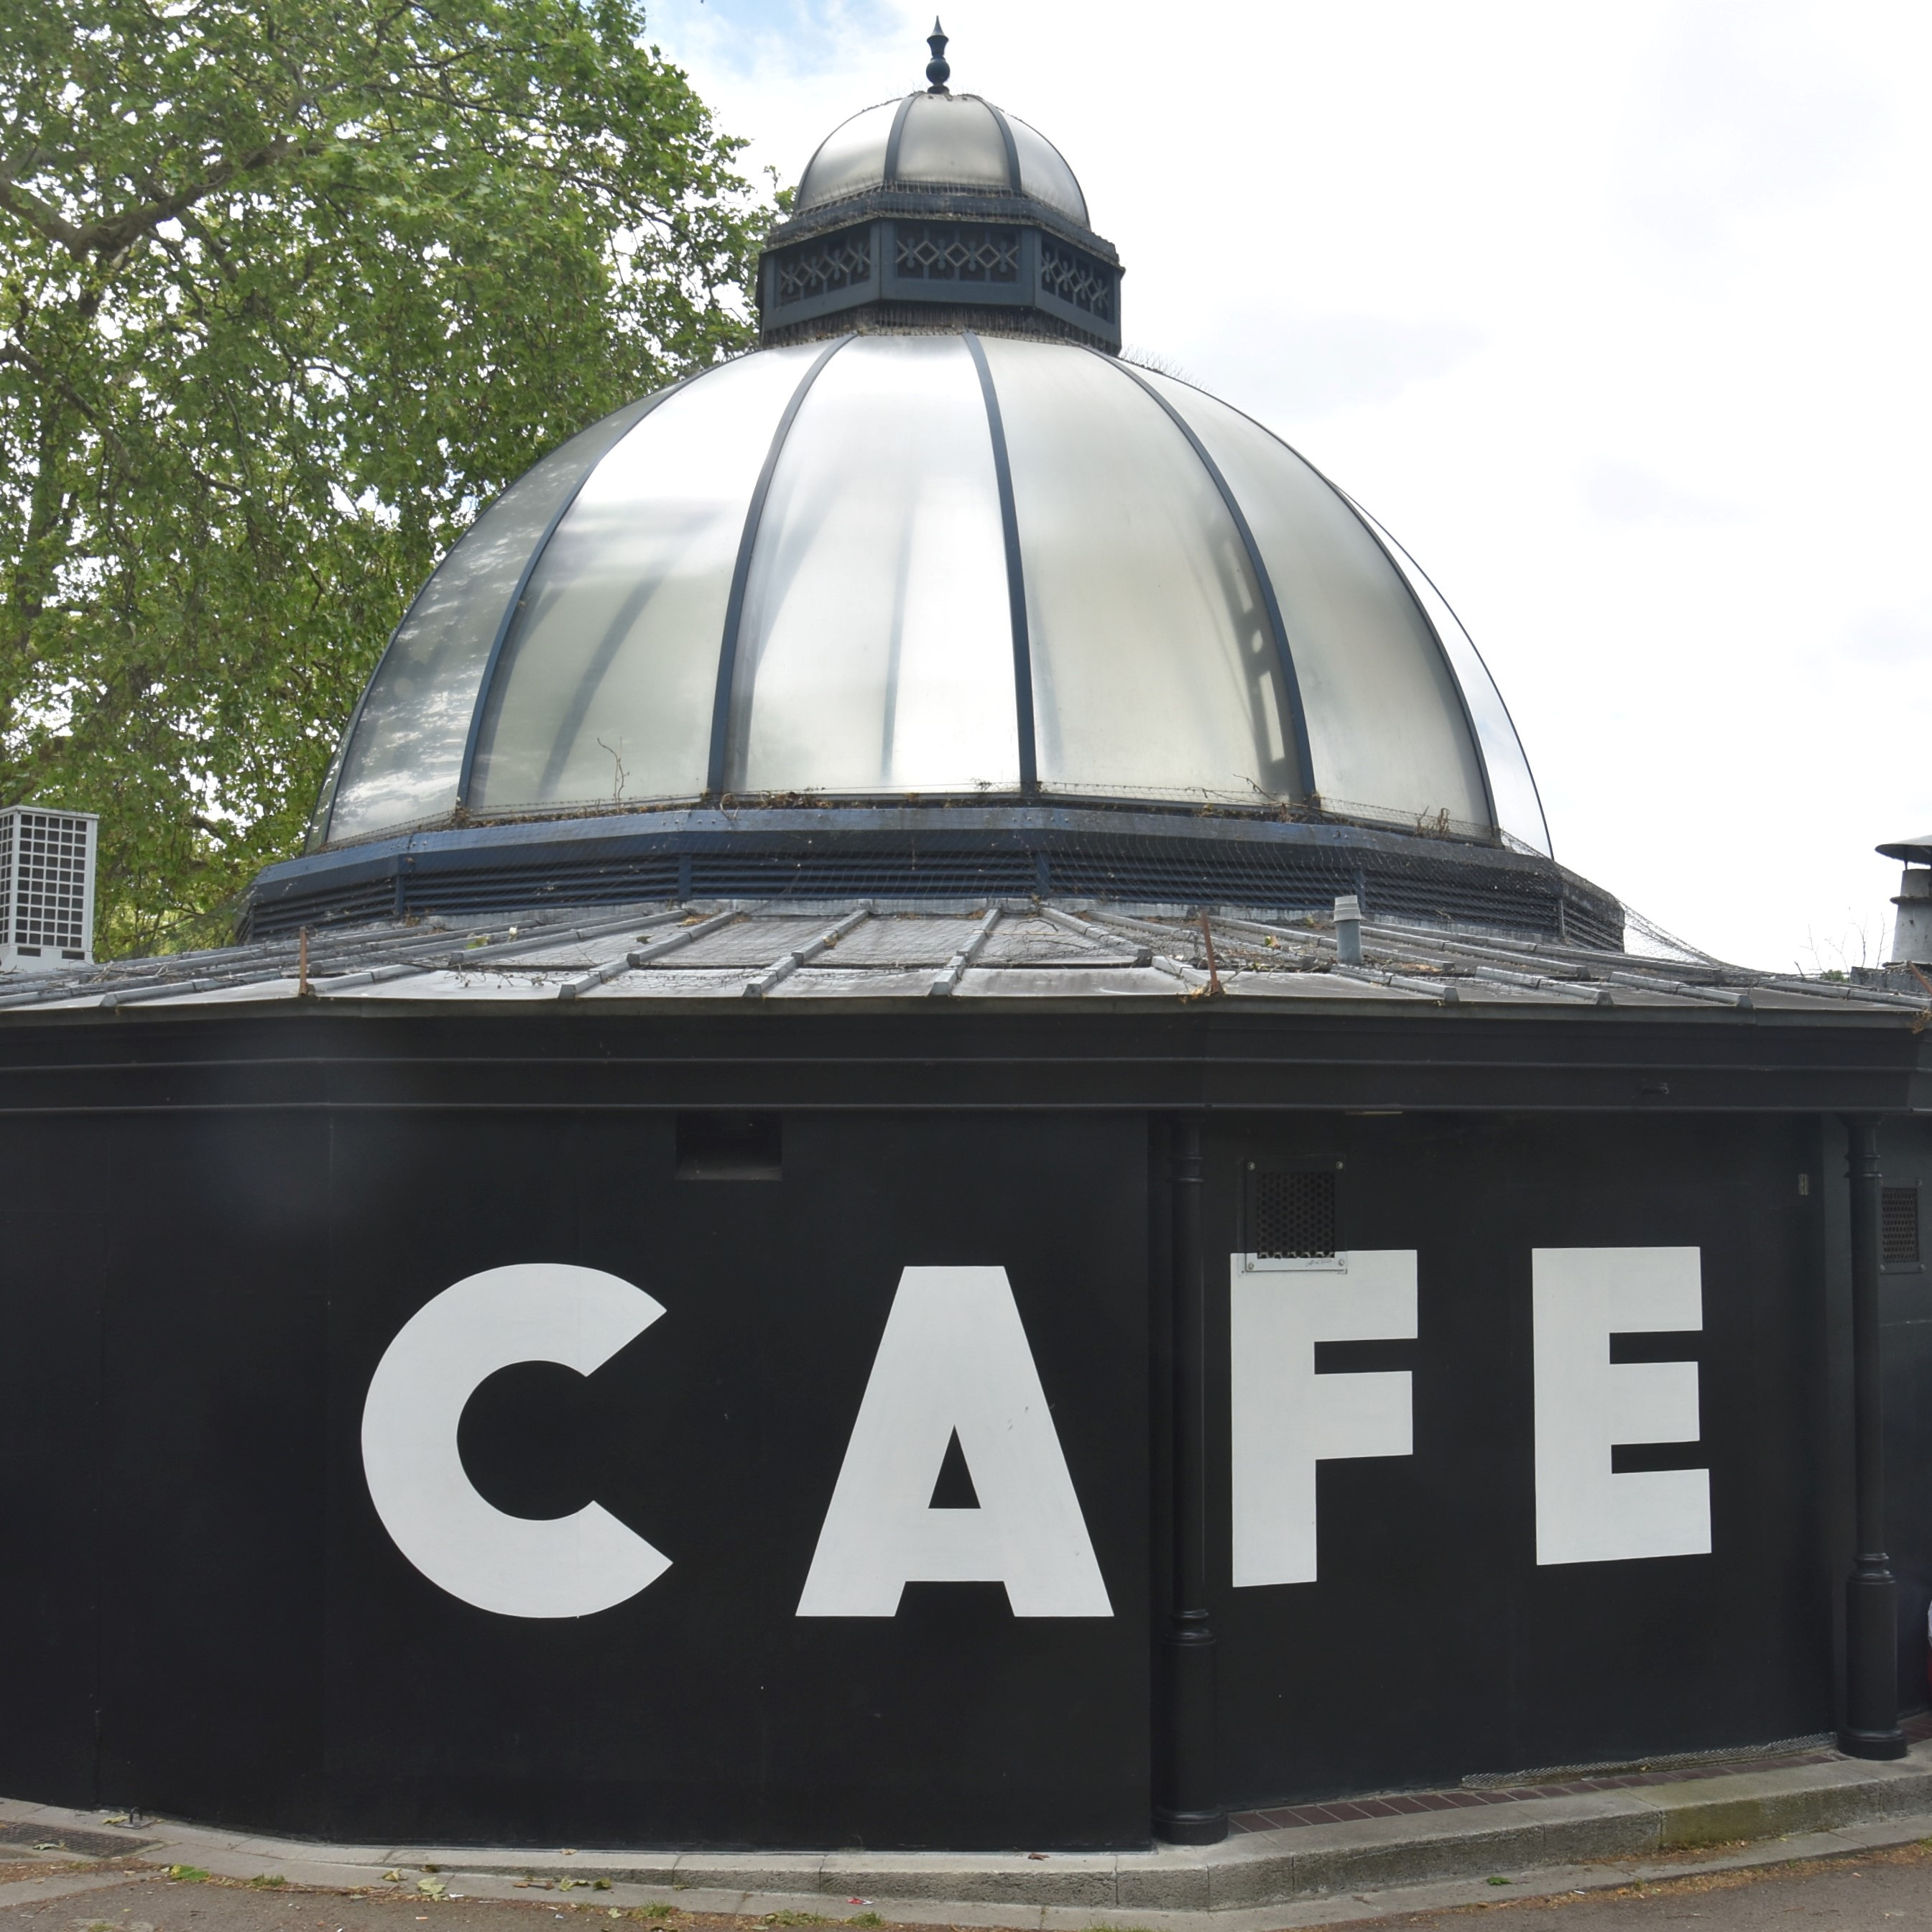 The word CAFE in white on the side wall of the Pavilion Cafe in Victoria Park, glass dome soaring above.